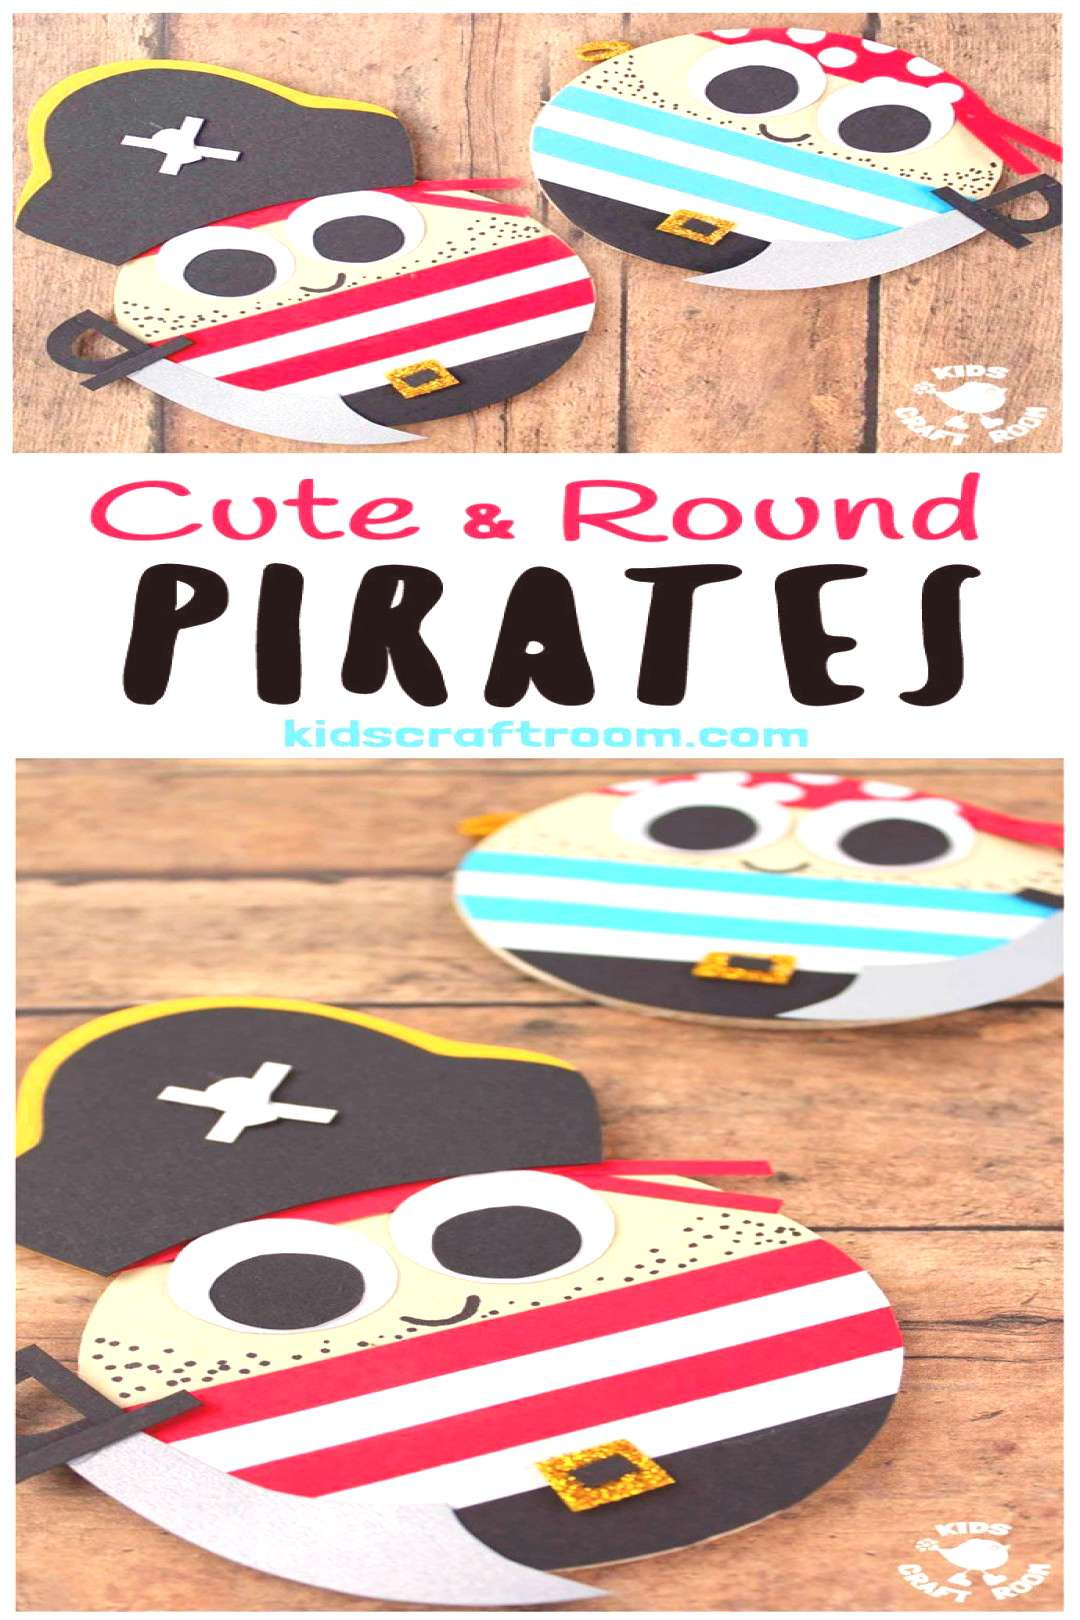 Cute Round Pirate Craft CUTE ROUND PIRATE CRAFT - Shiver me timbers this pirate craft idea is easy